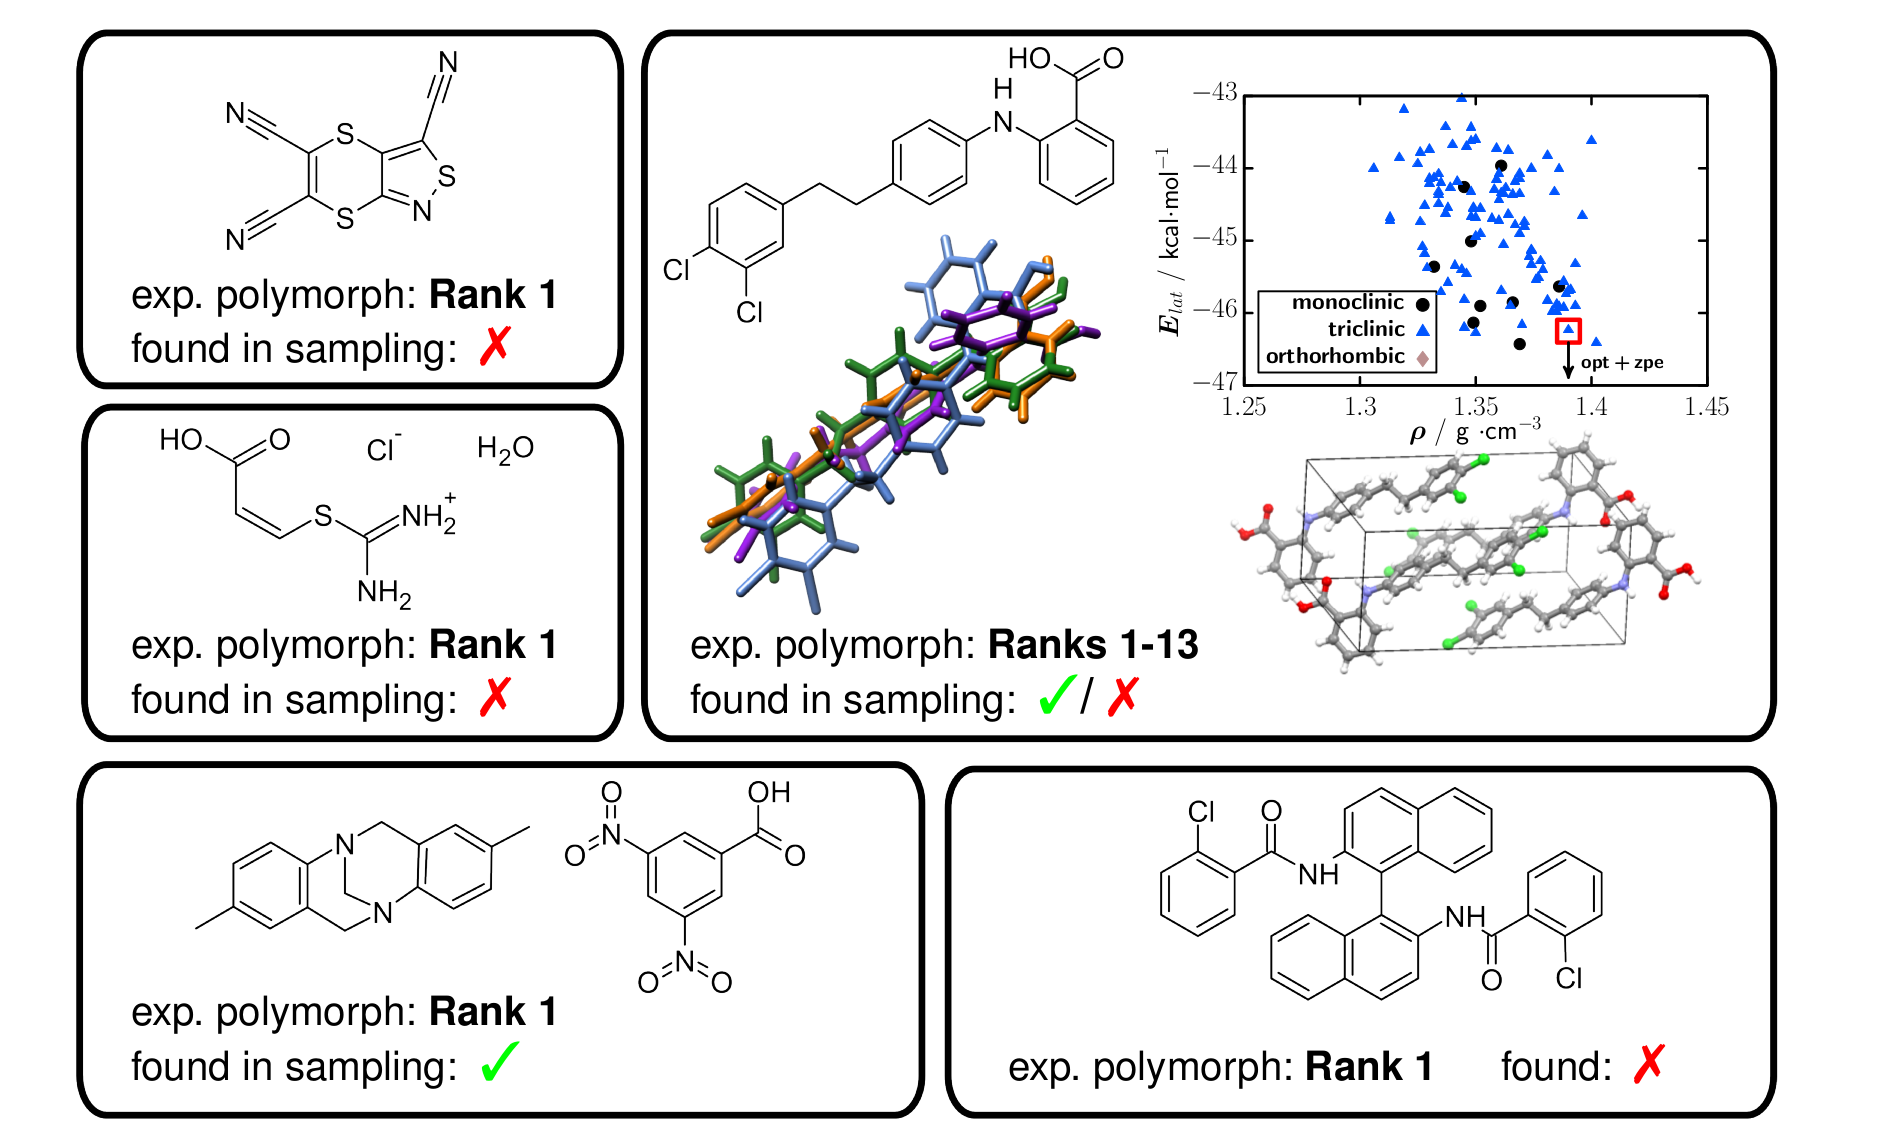 6th blind test for organic crystal structure prediction